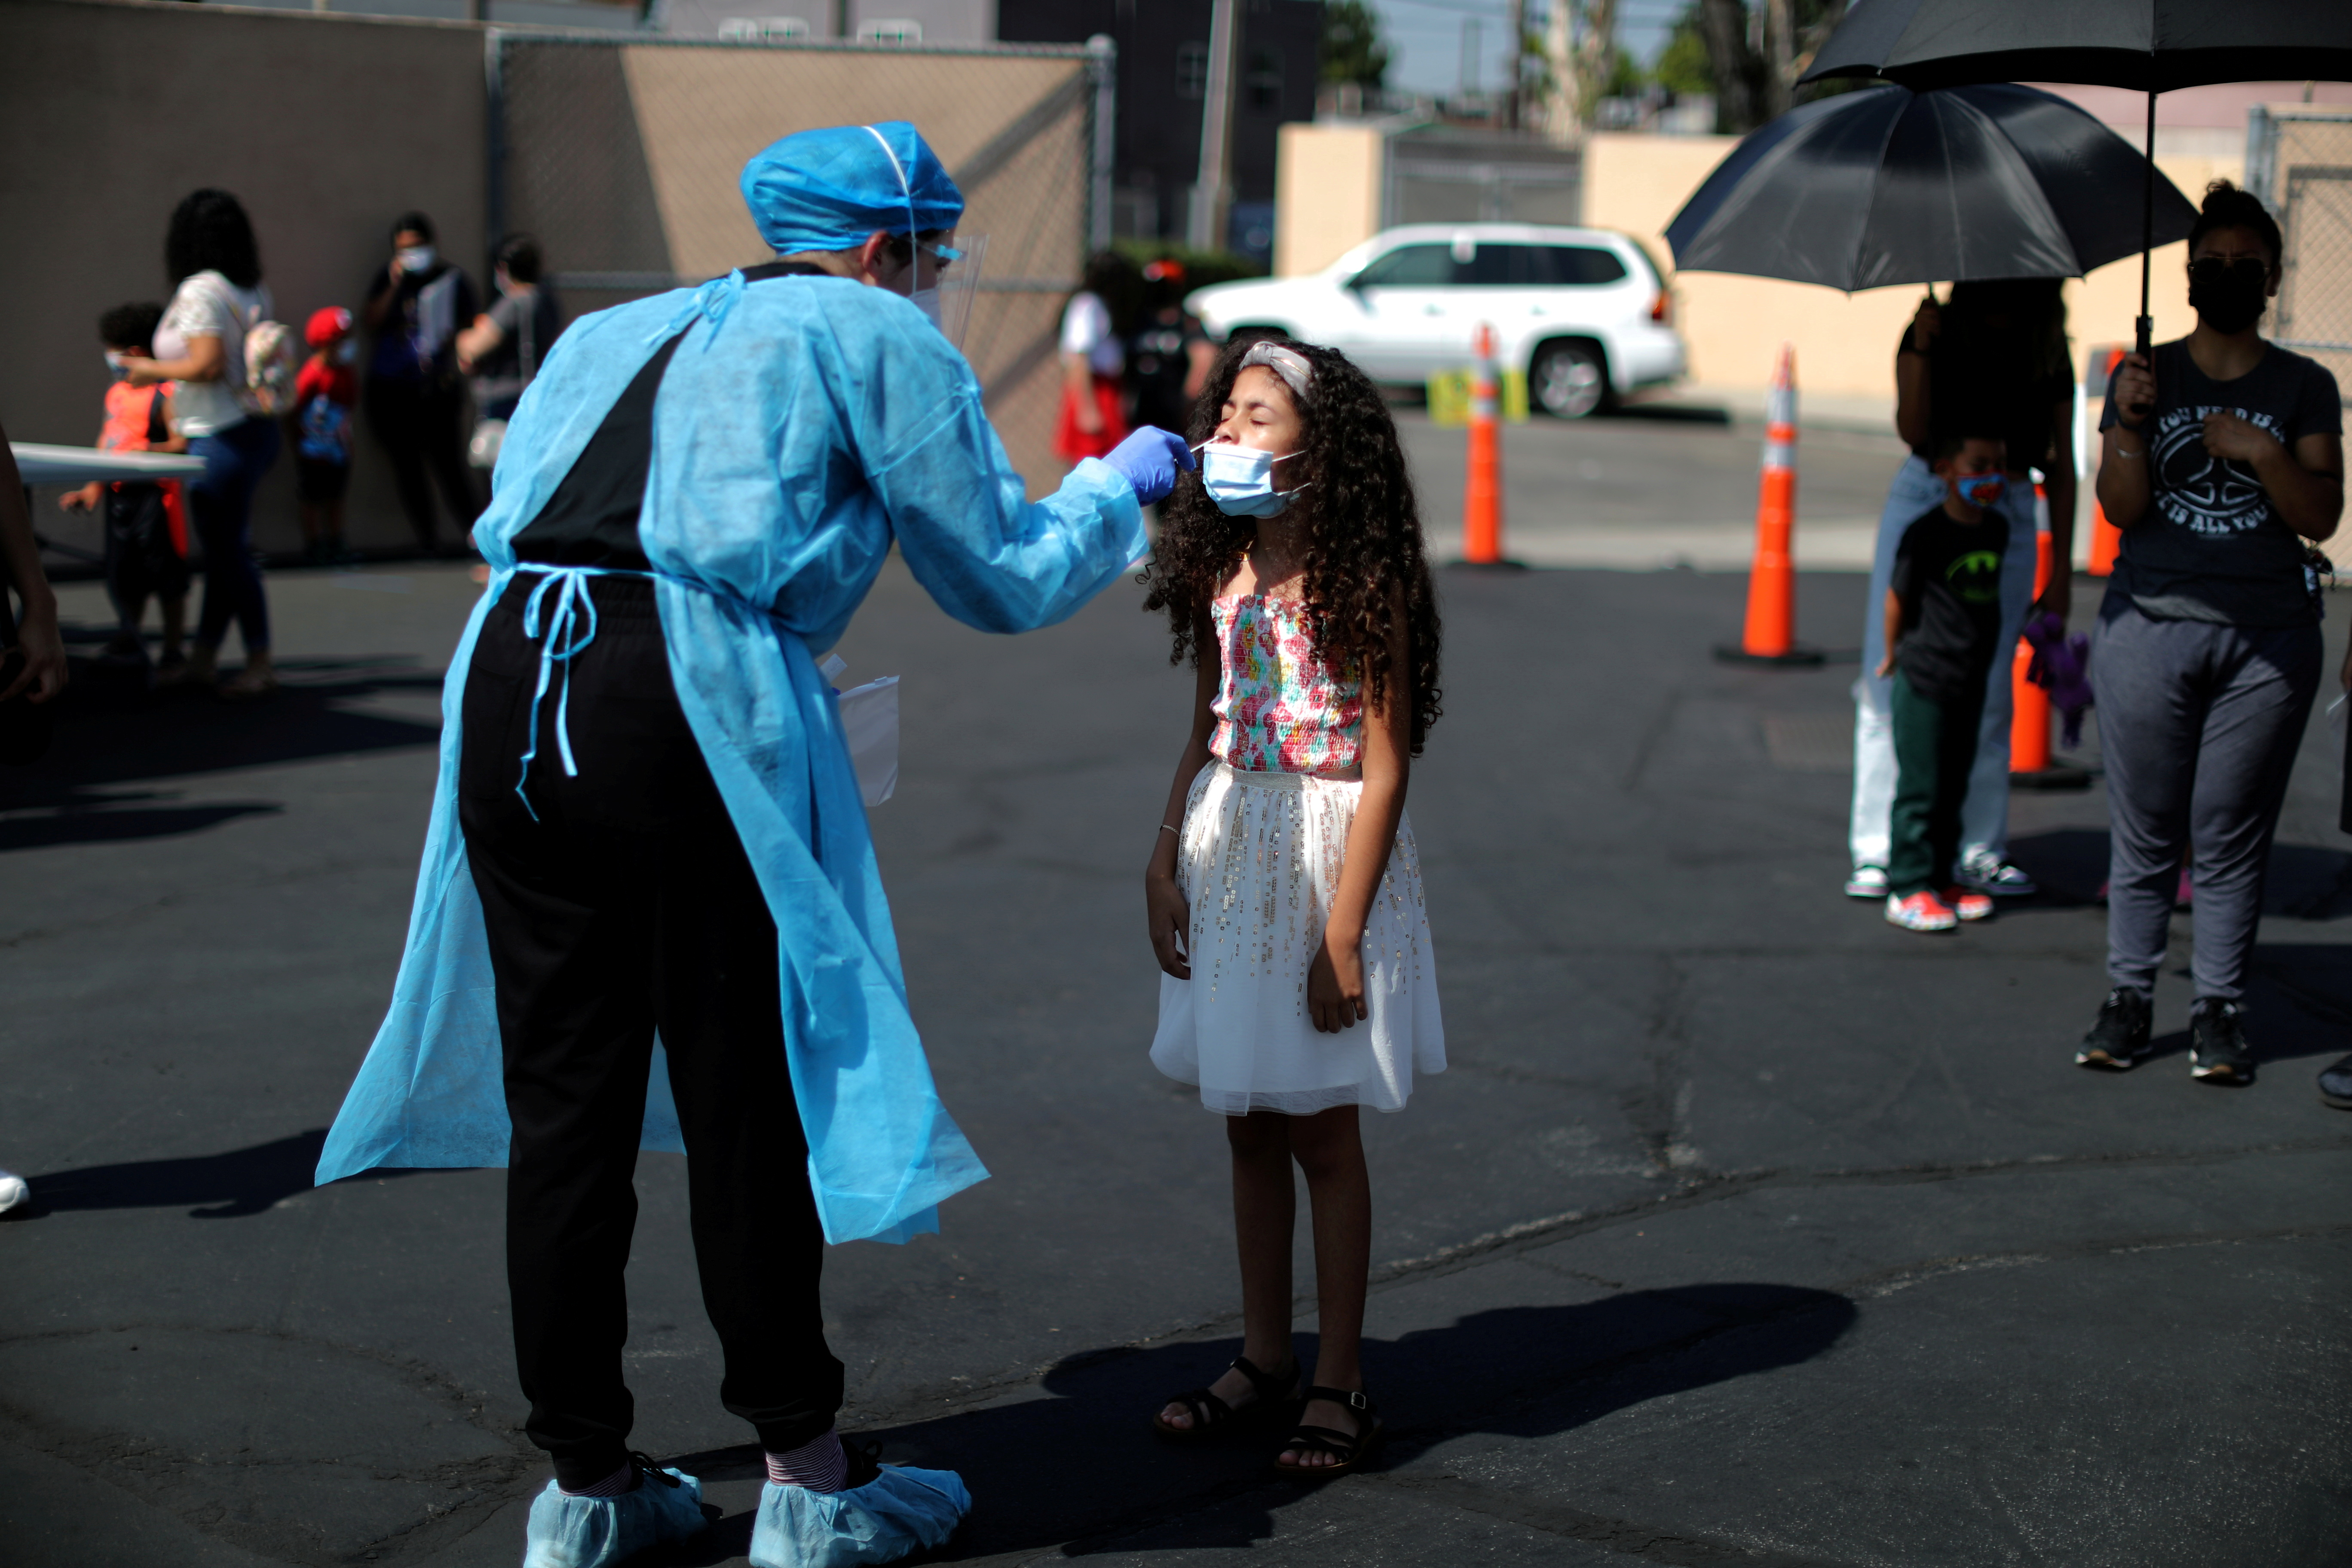 Alisson Argueta, 8, is given a coronavirus disease (COVID-19) test at a back-to-school clinic in South Gate, Los Angeles, California, U.S., August 12, 2021. REUTERS/Lucy Nicholson/File Photo